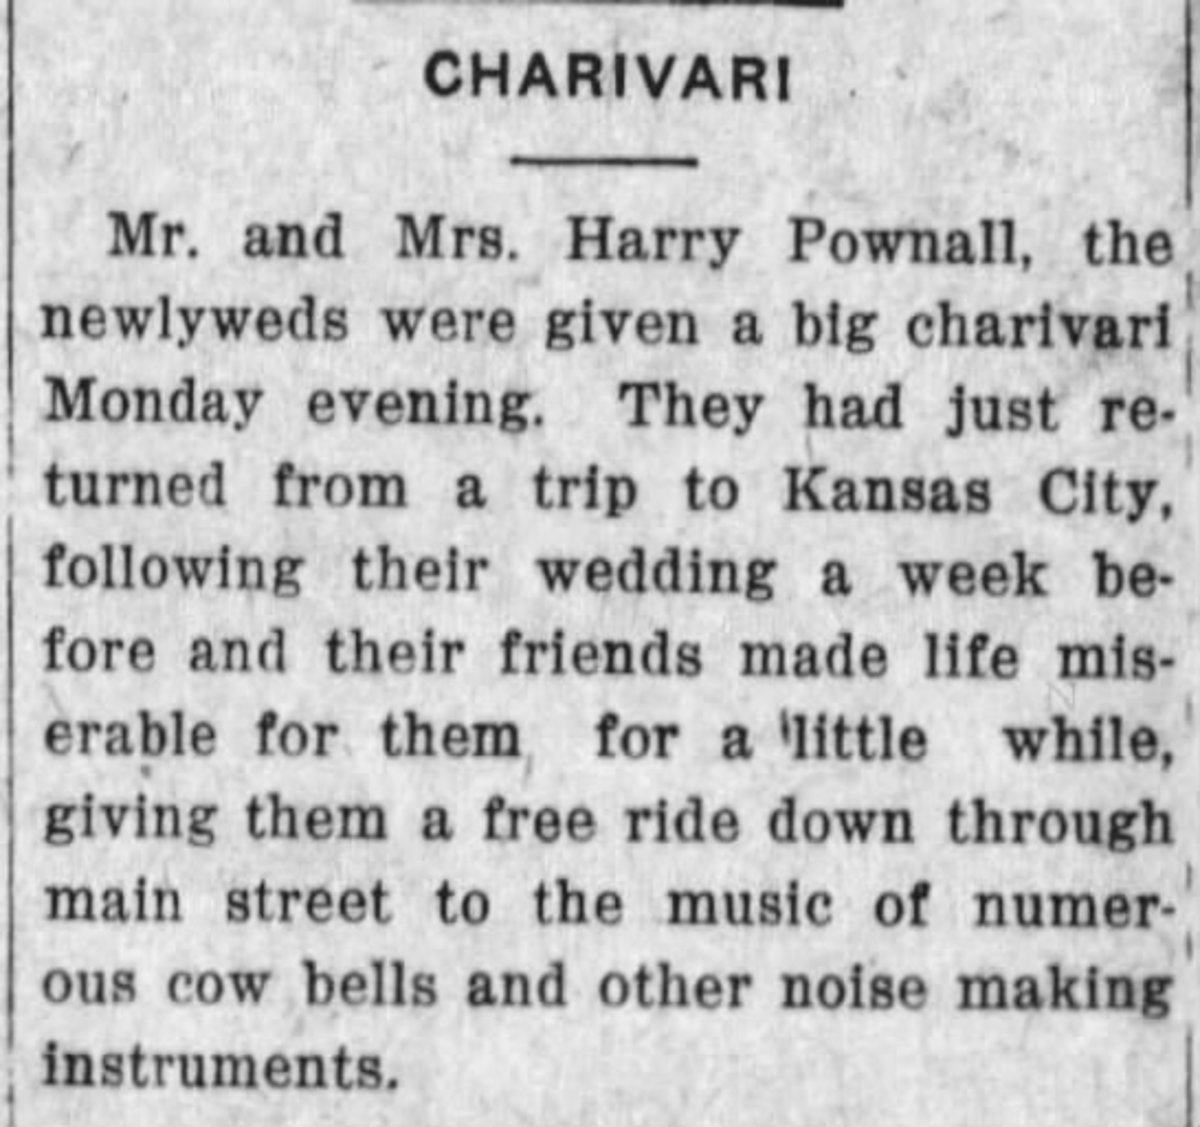 One clipping about my ancestor mentioned a charivari. That piqued my curiosity. Seaching on that word, I found a number of articles that clarified what this old-fashioned wedding activity was.